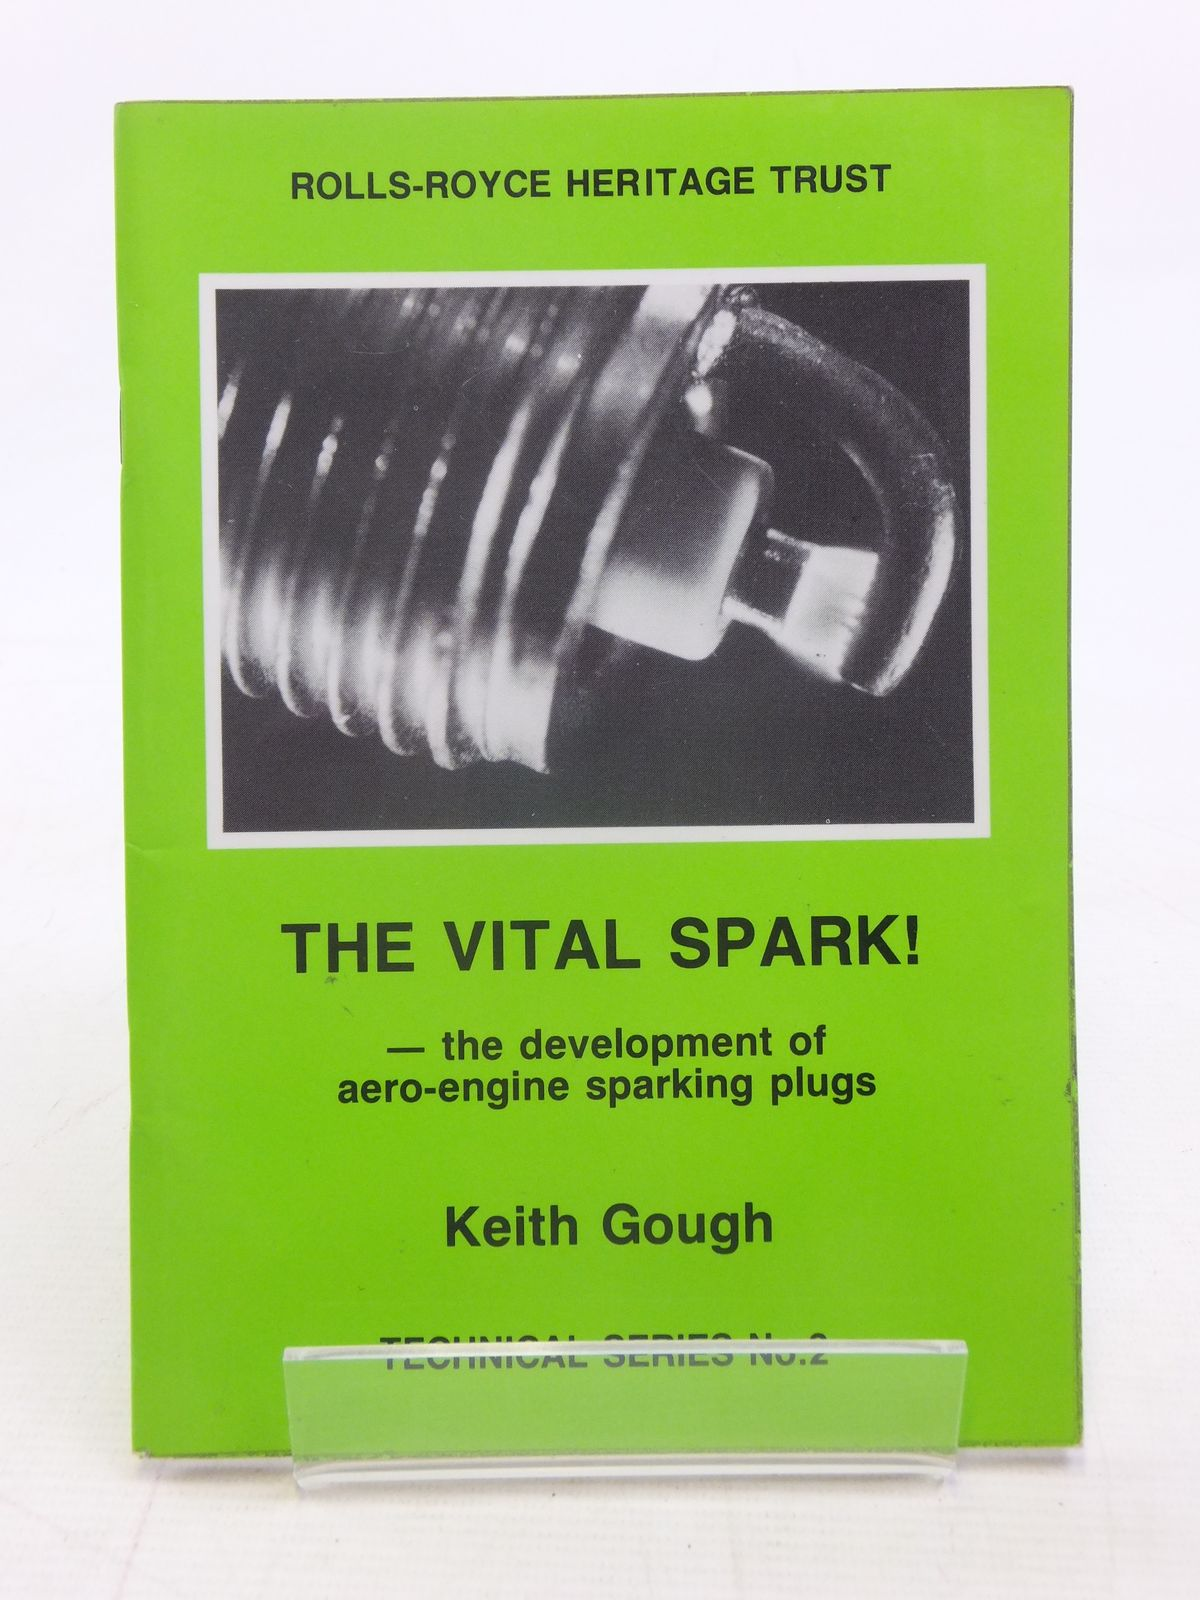 Photo of THE VITAL SPARK! THE DEVELOPMENT OF AERO-ENGINE SPARKING written by Gough, Keith published by Rolls-Royce Heritage Trust (STOCK CODE: 1606173)  for sale by Stella & Rose's Books